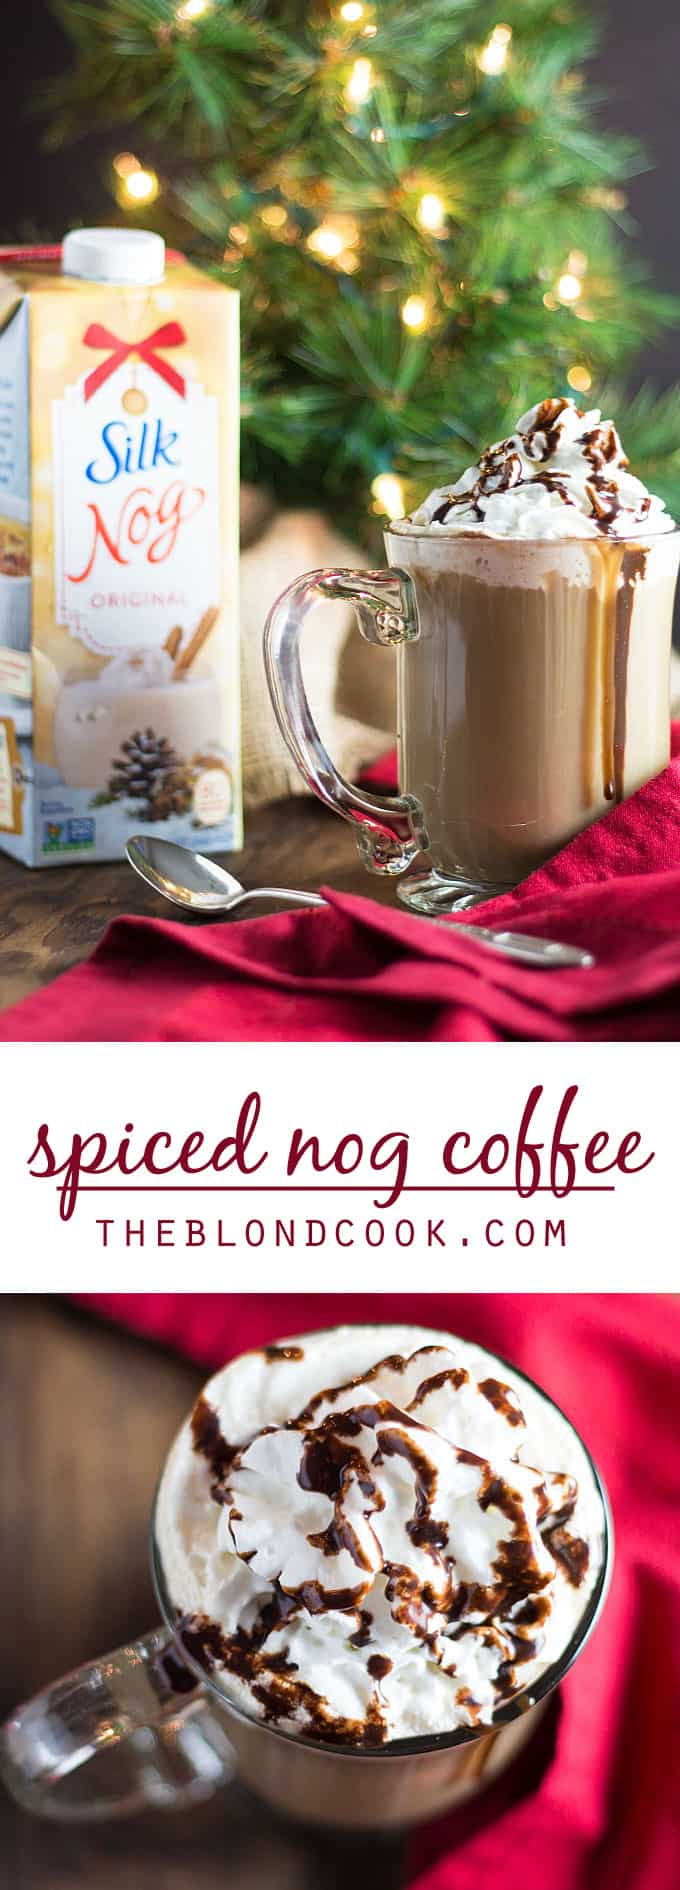 Spiced Nog Coffee Cocktail – Nog, coffee and spiced rum make the ultimate holiday cocktail!